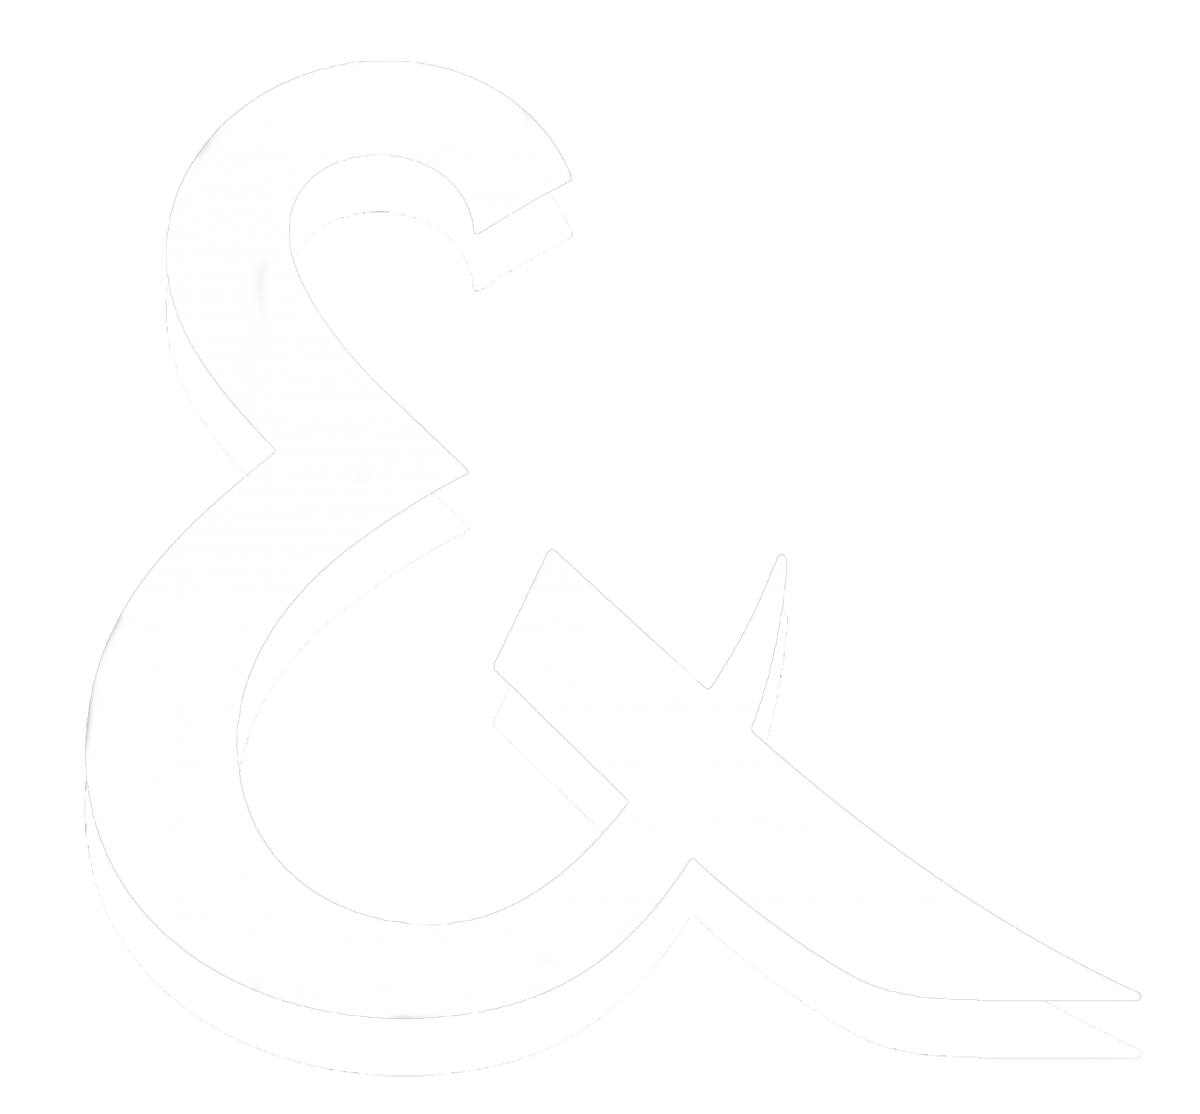 Media Library - AMPERSAND SYMBOL WHITE